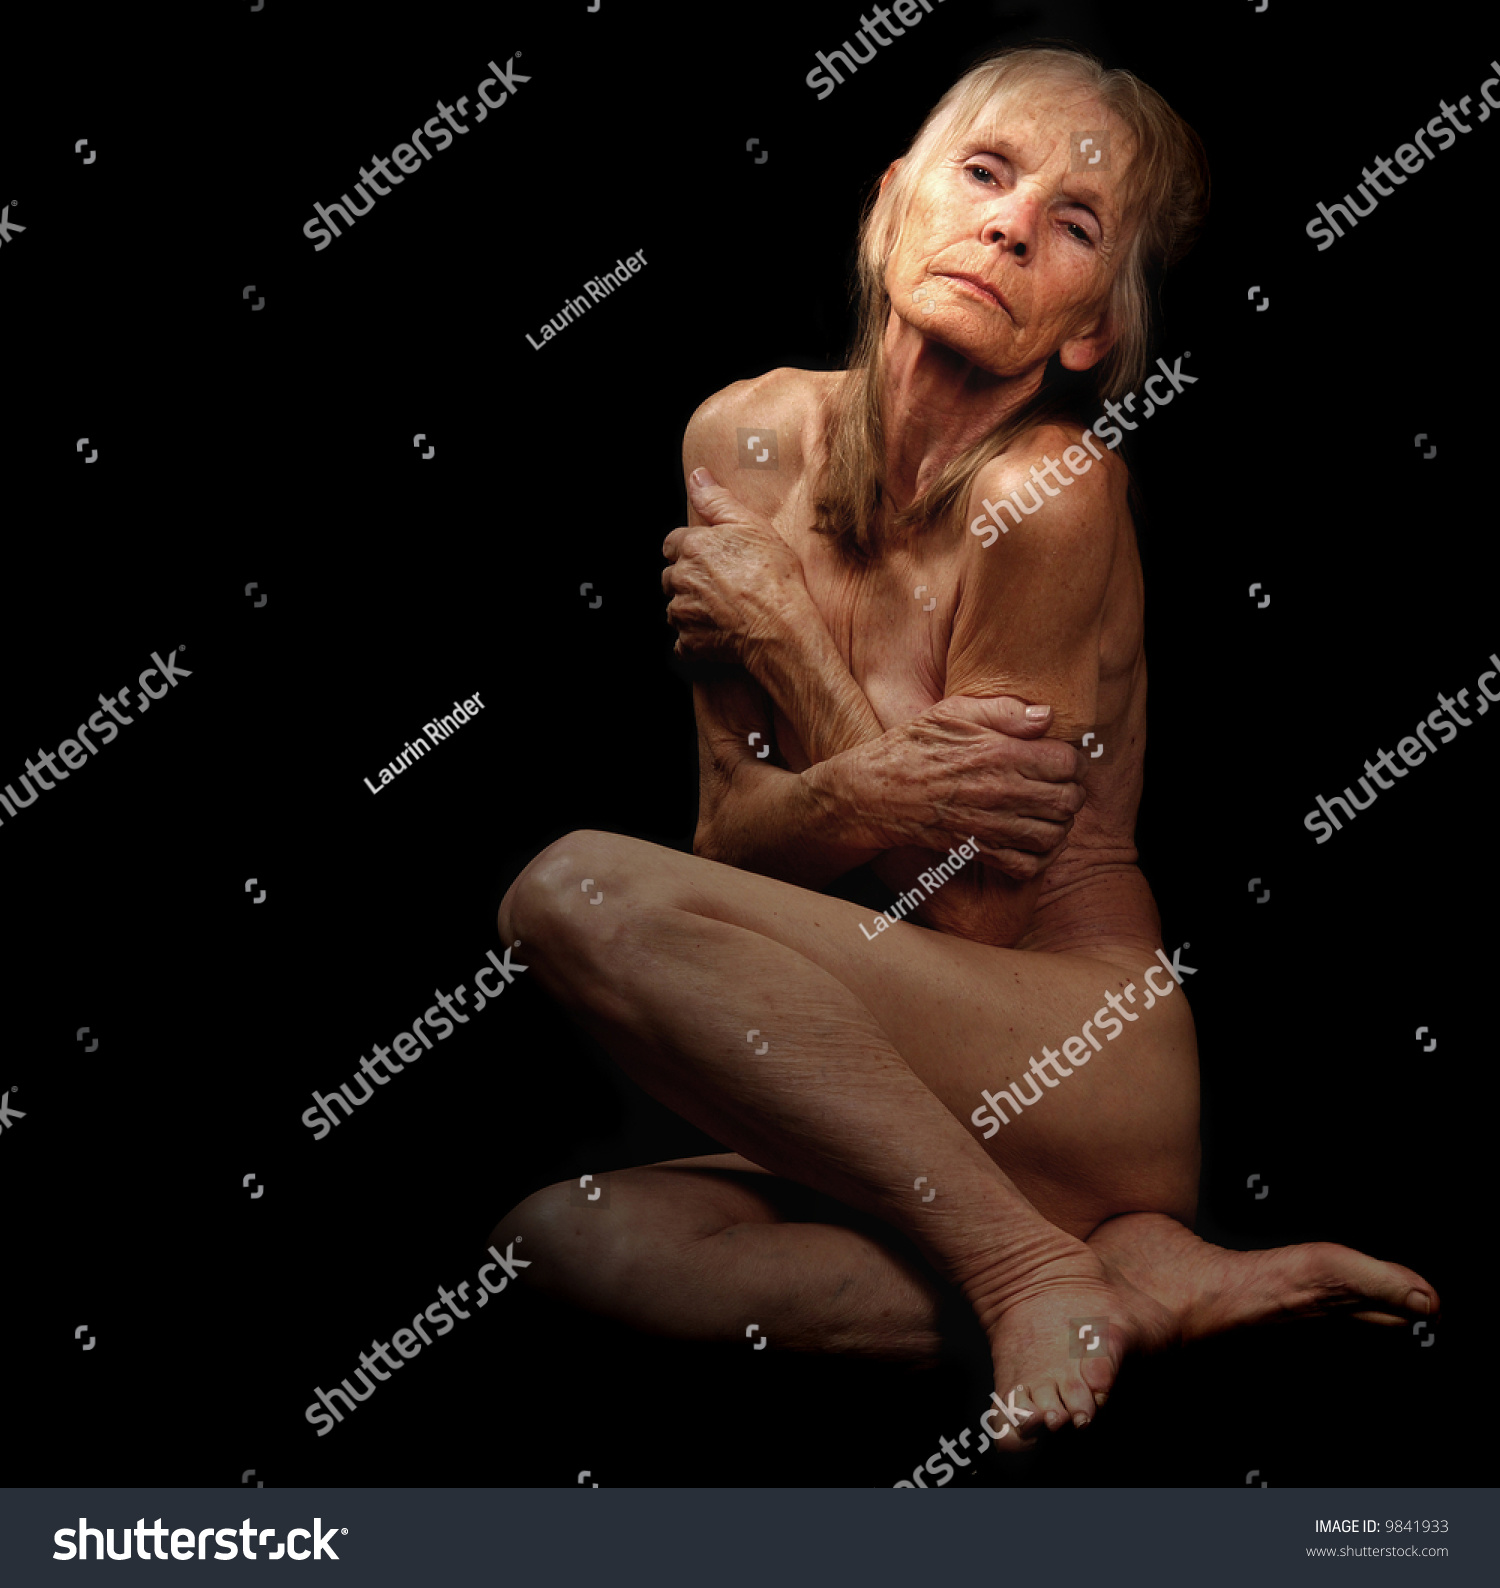 70 year old granny nude pictures at EveKnows